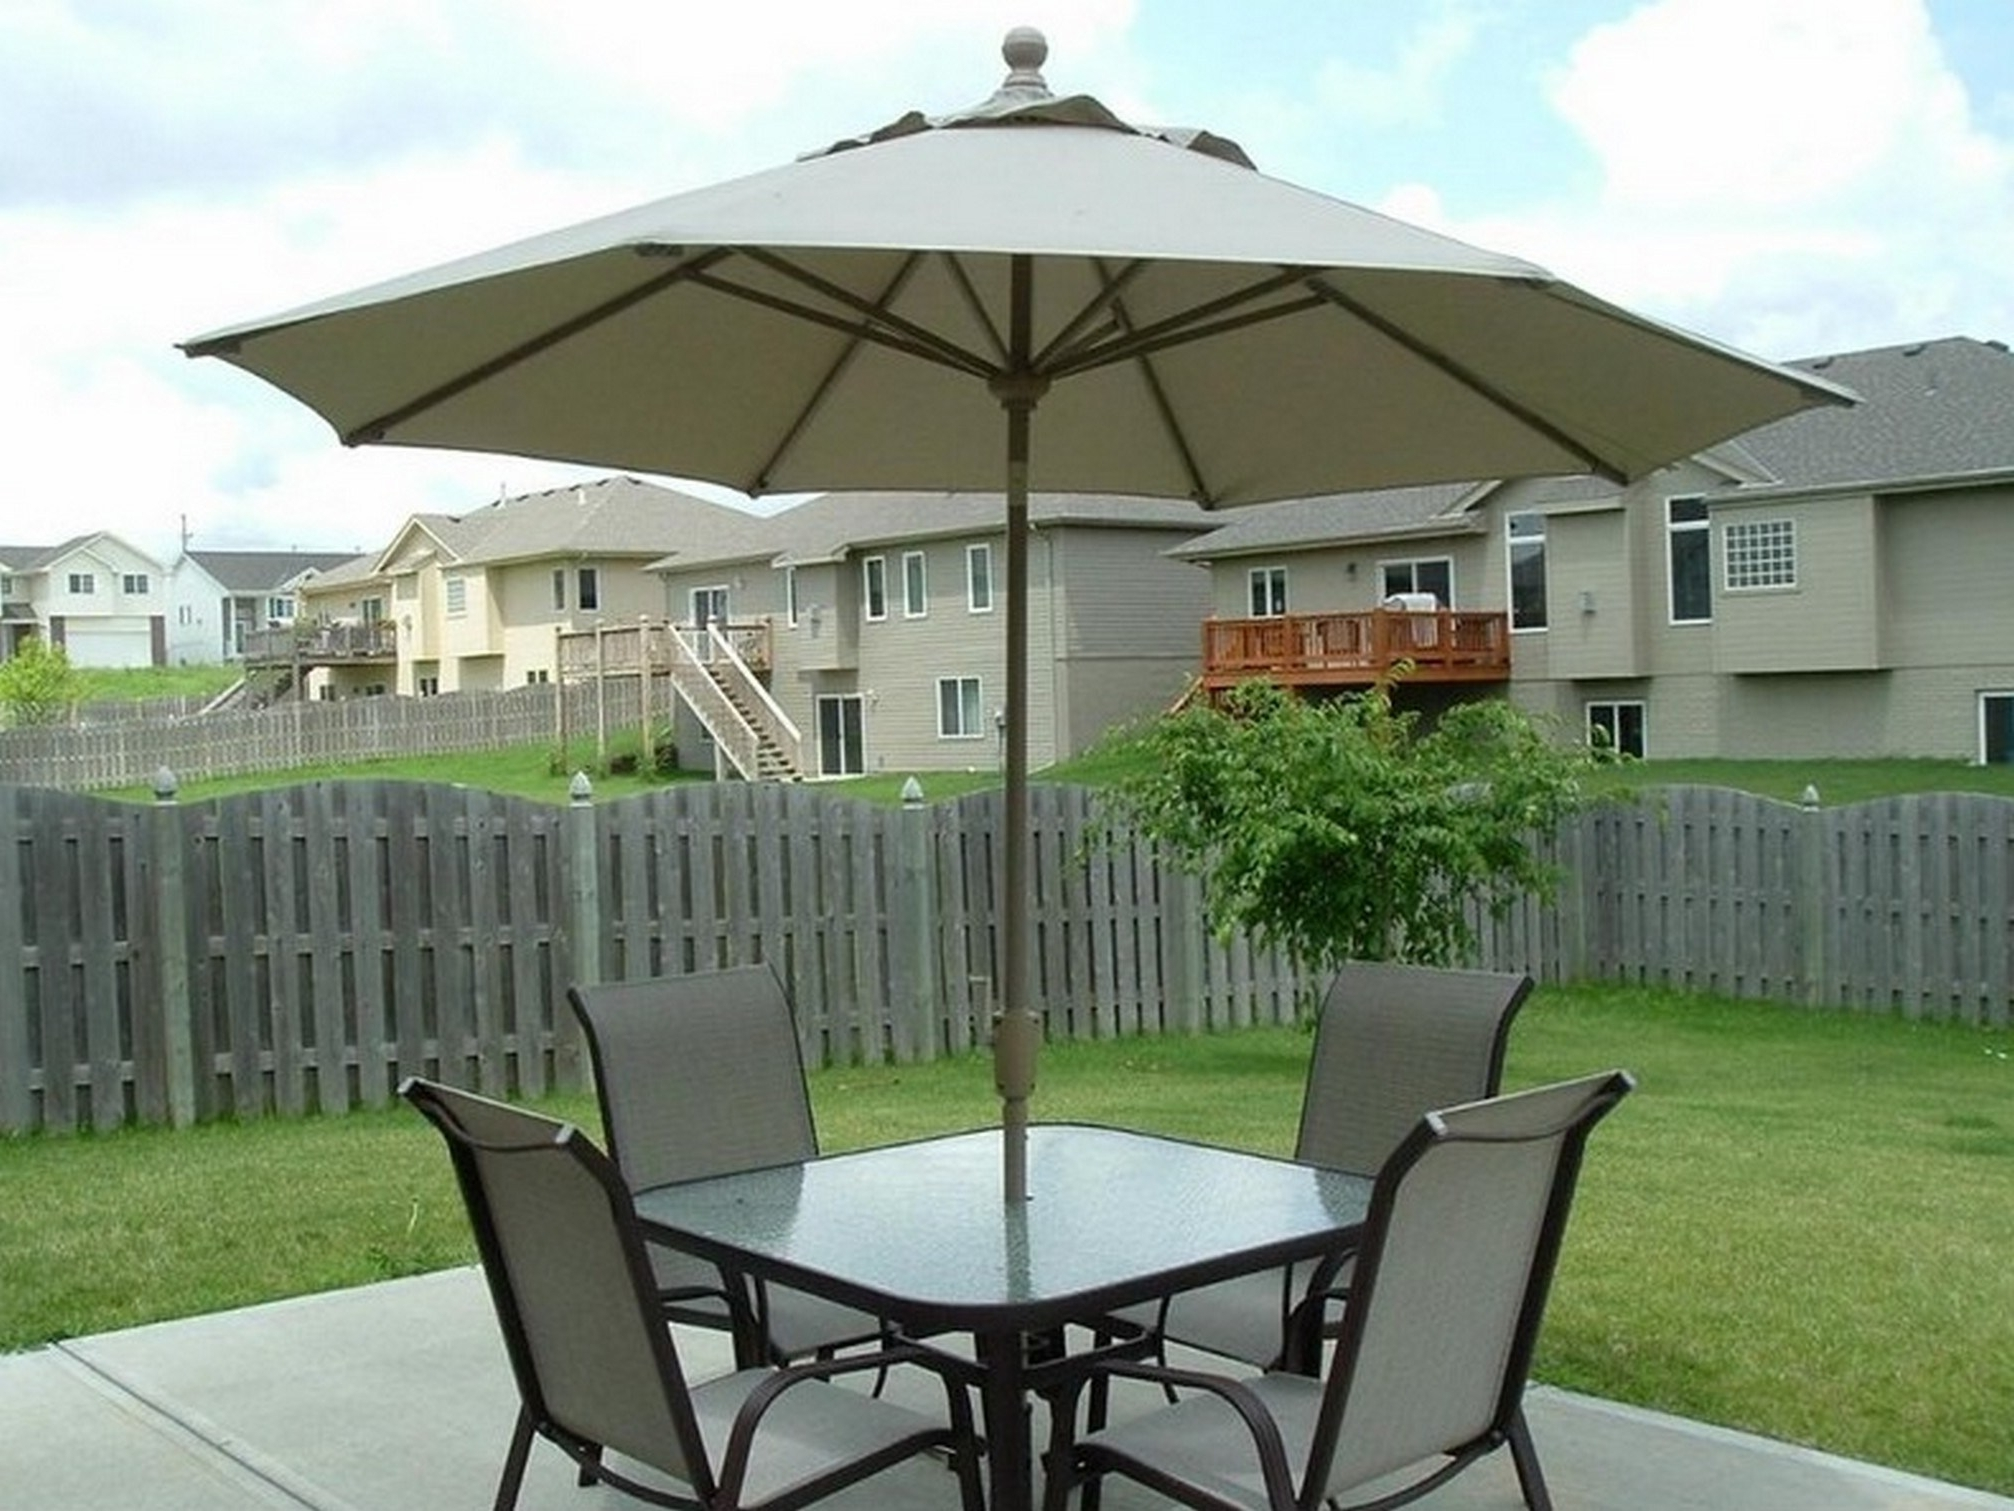 Splendent Affordable Patio Furniture Sets Discount Wicker Patio Regarding Latest Patio Table Sets With Umbrellas (View 9 of 20)